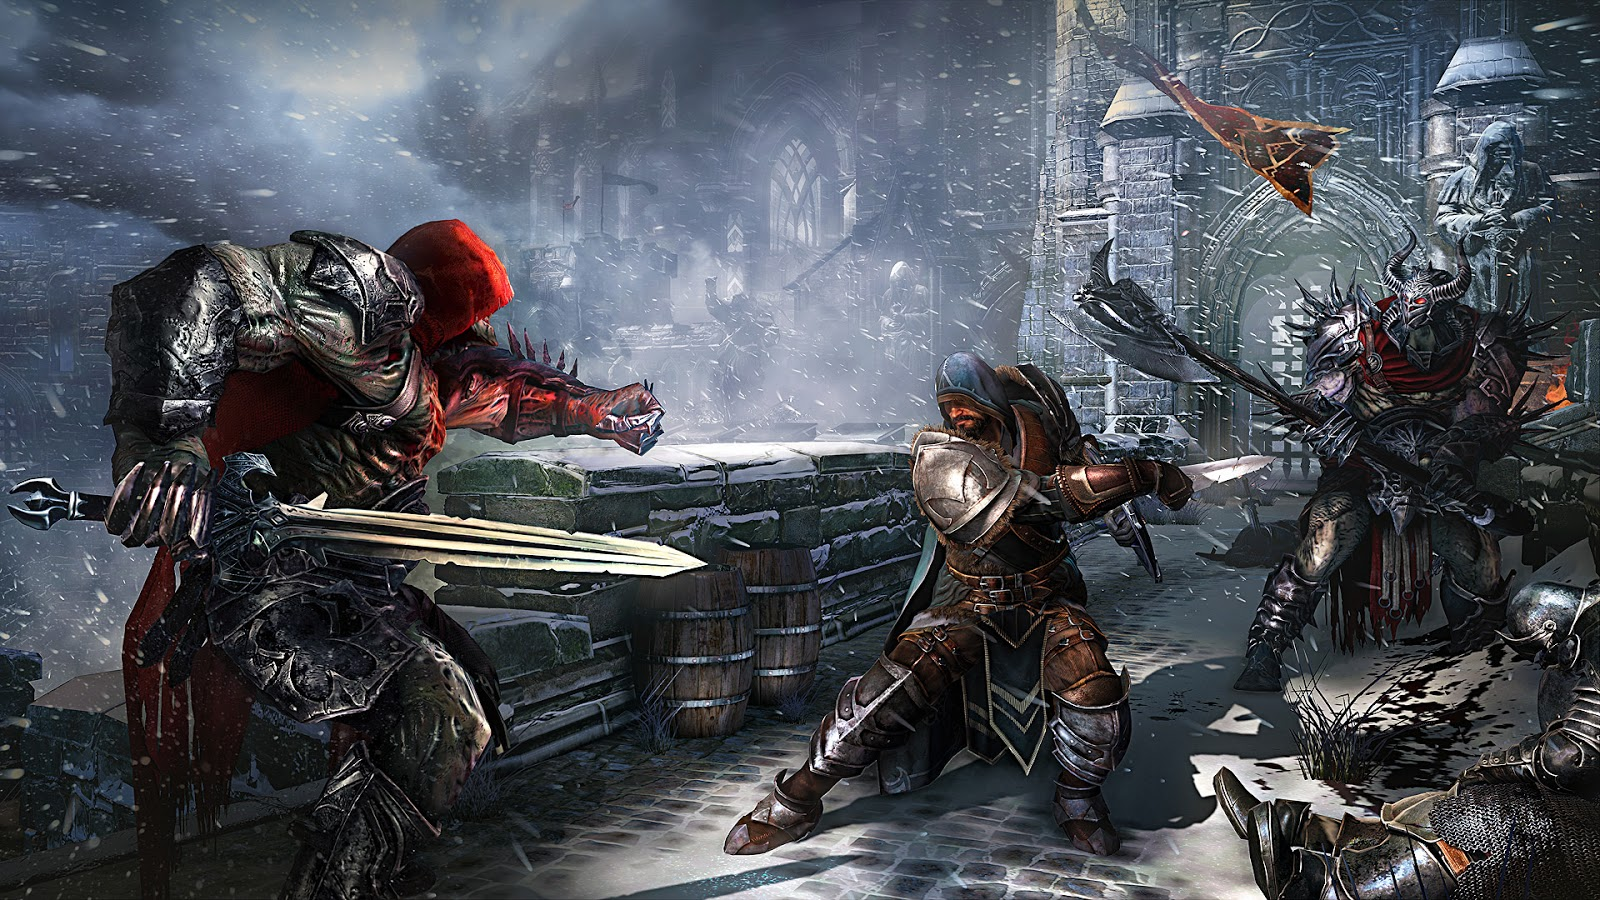 Lords of the fallen complete edition ps4 download v. 1. 03 & dlc.